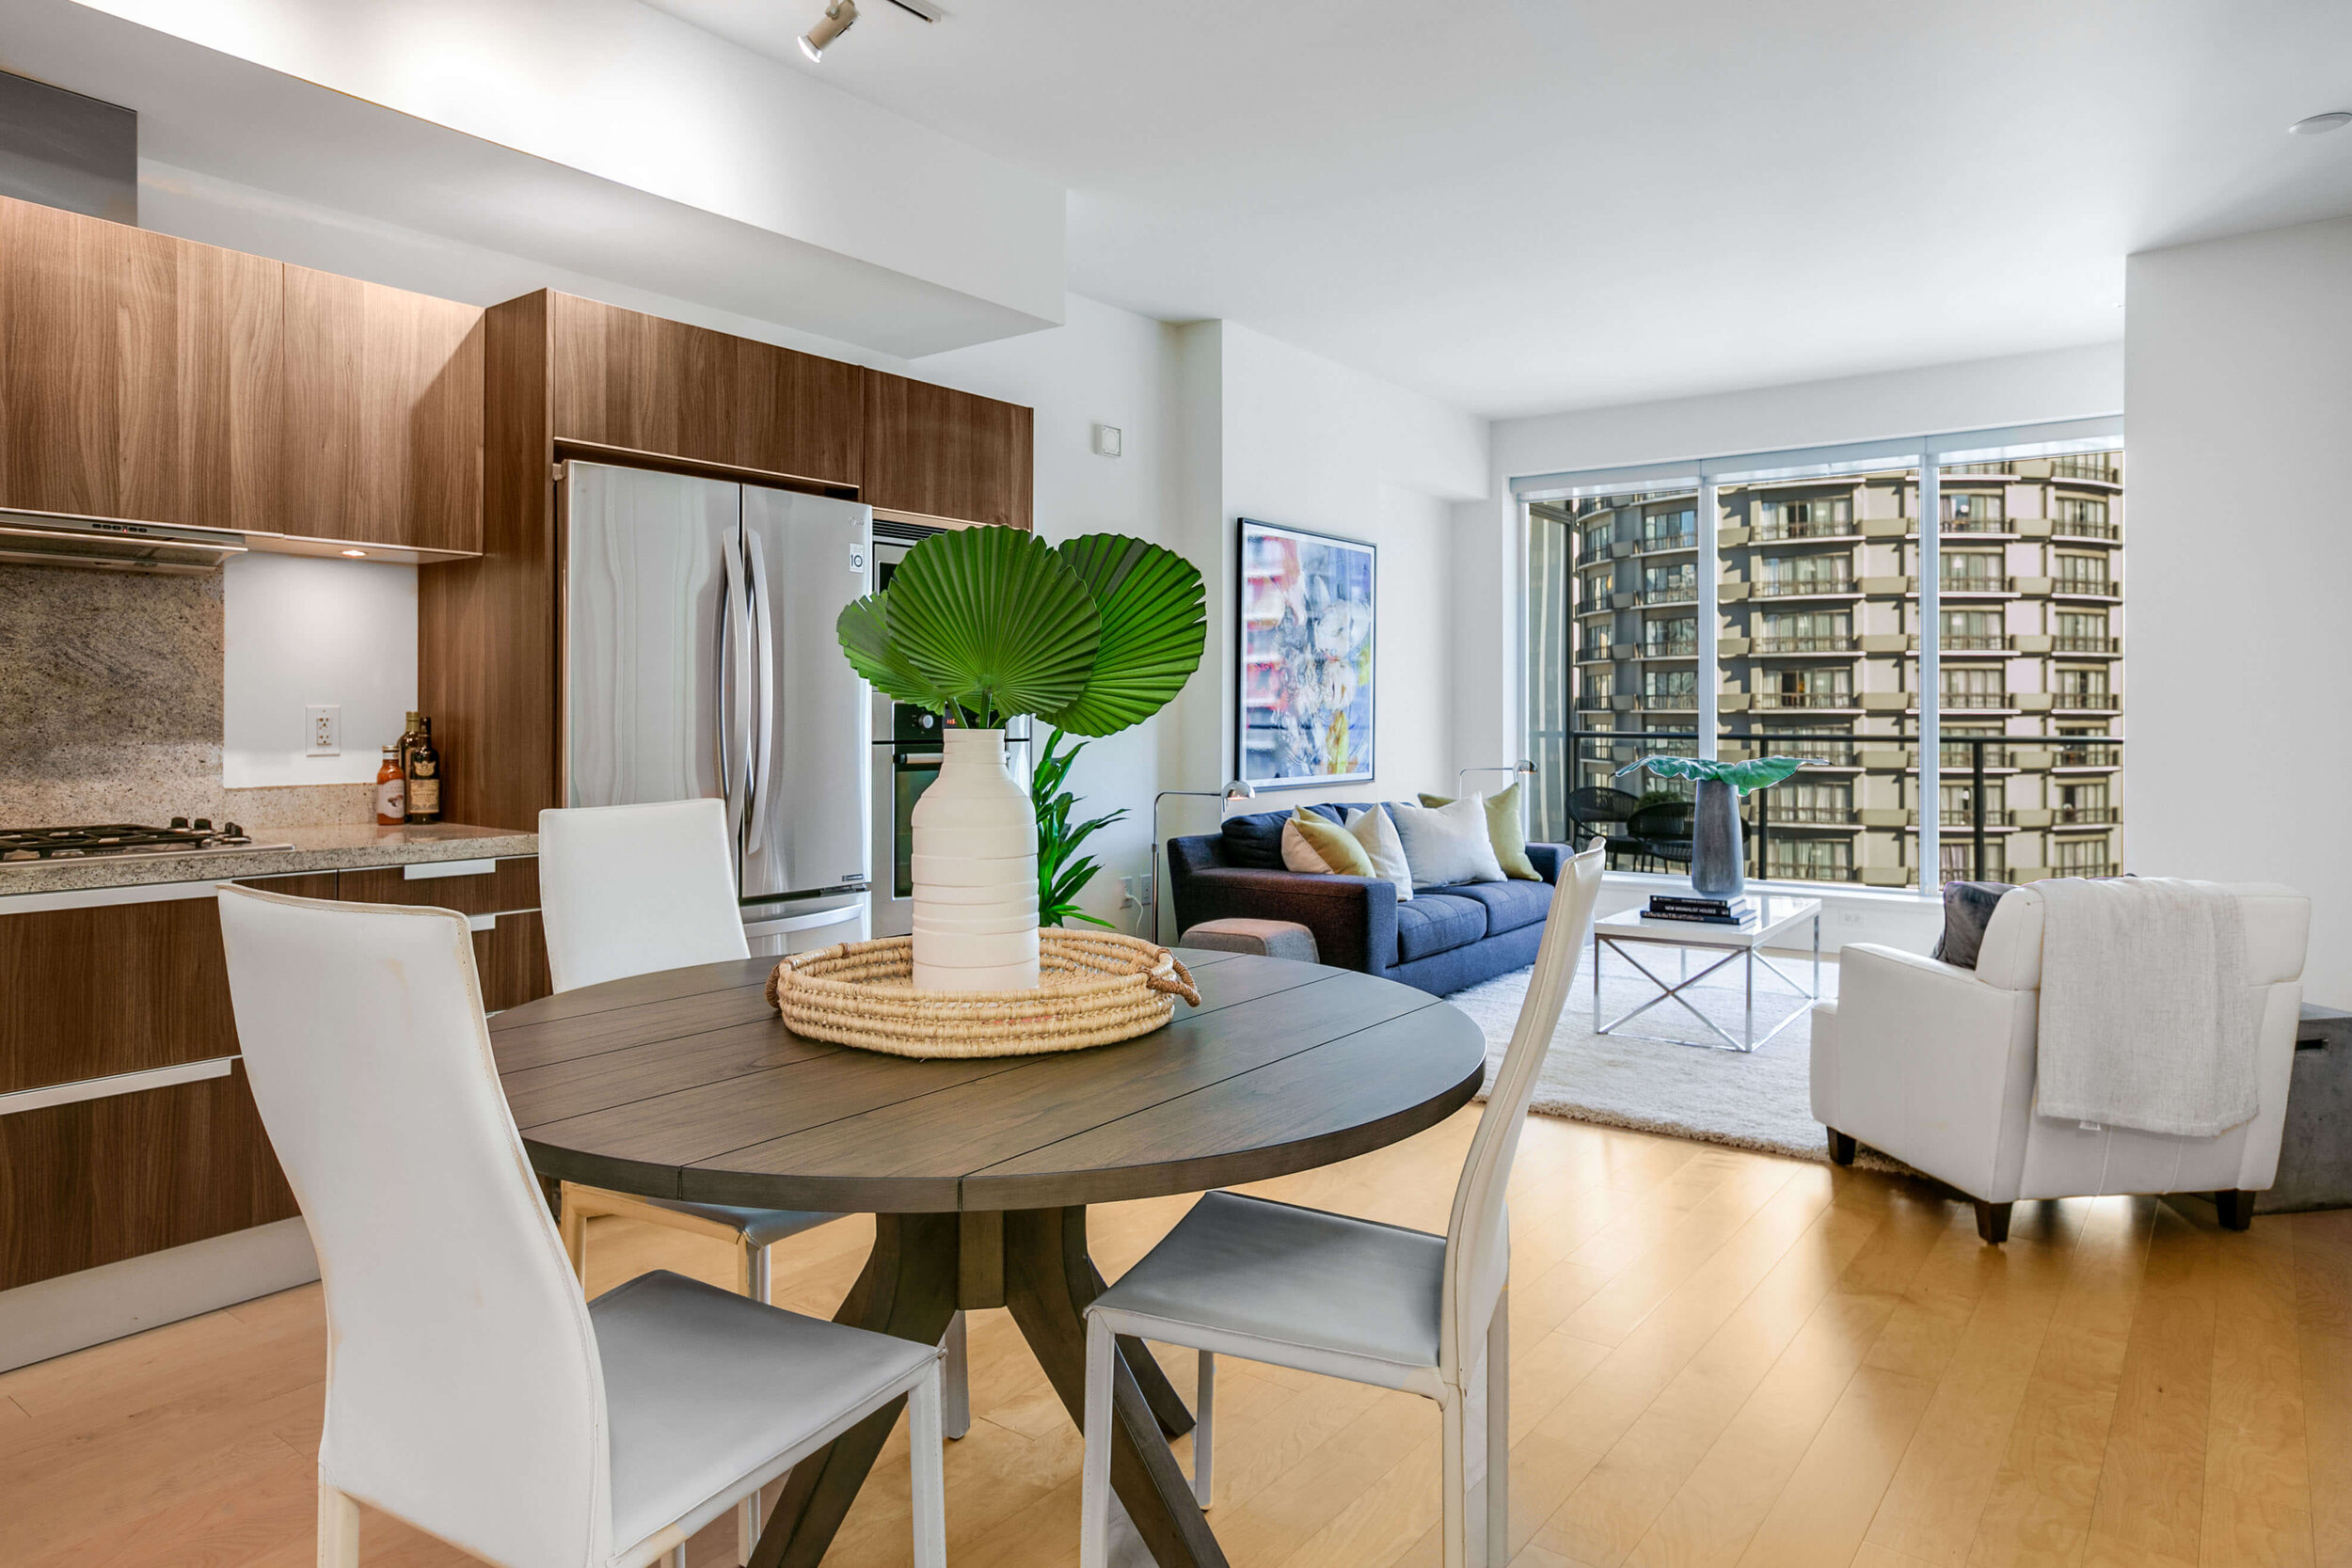 ESCALA # 809 - 1 Bedroom, 1.5 Bathrooms, 910 Square Feet,1 Parking SpacesOffered at $675,000